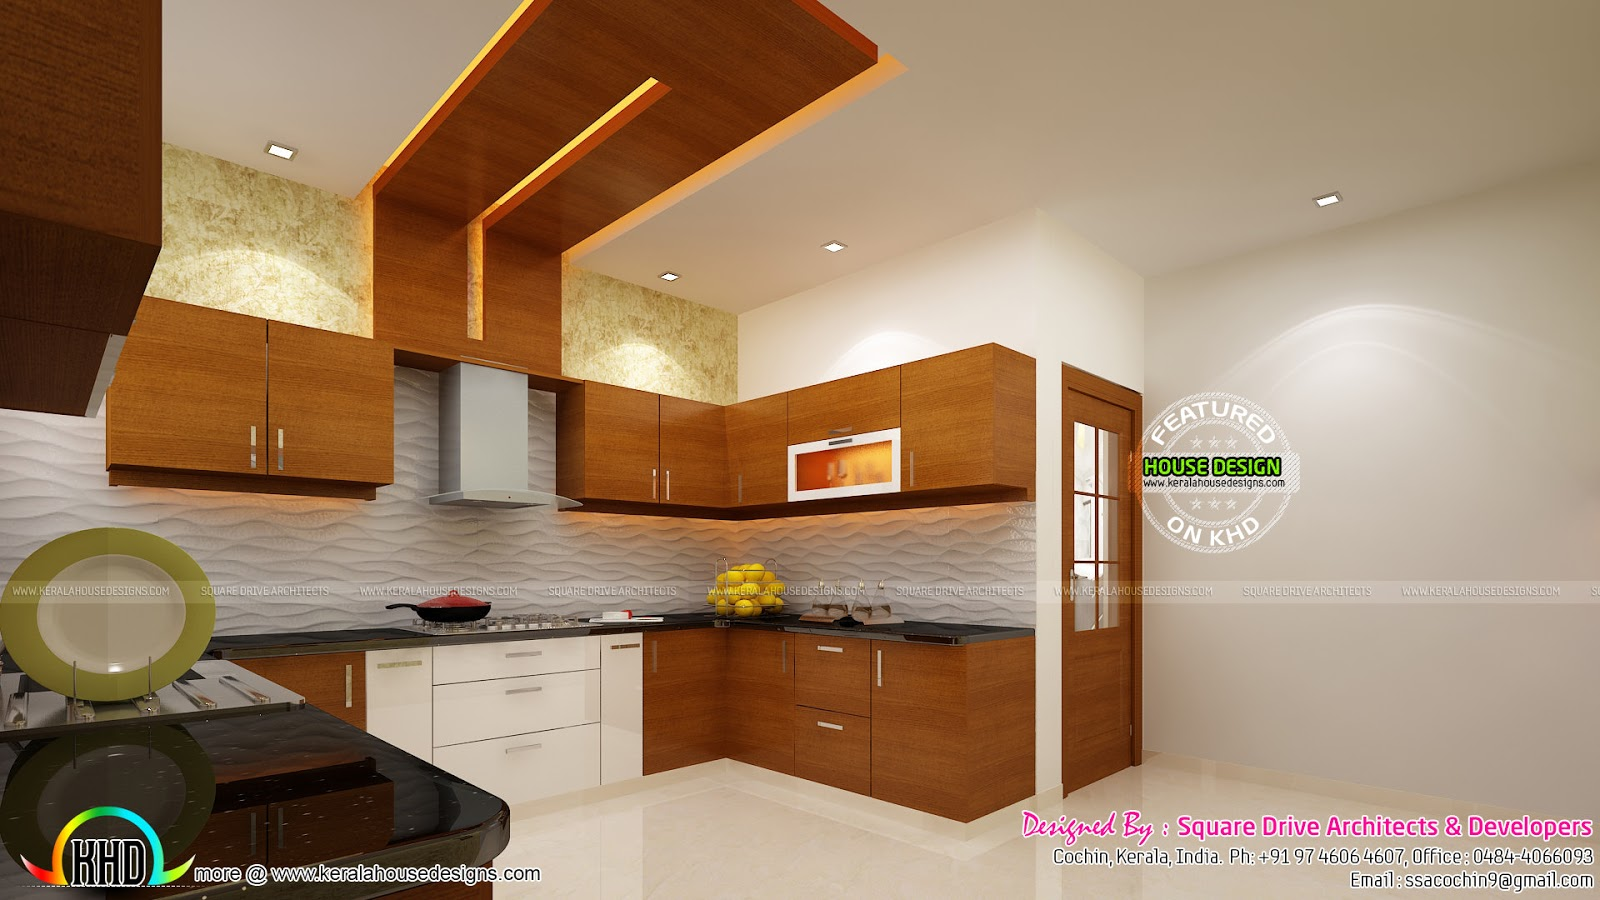 Sweet interior designs kerala home design and floor plans for Modern kitchen designs in kerala